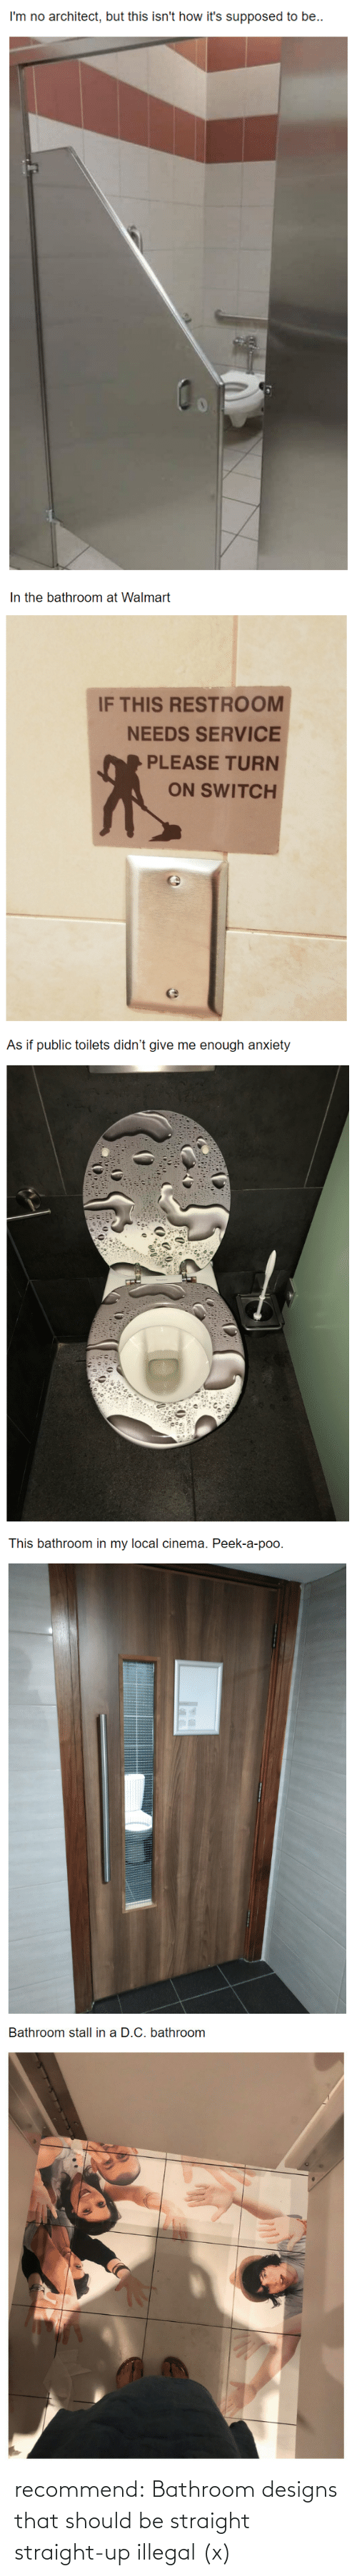 illegal: recommend:  Bathroom designs that should be straight straight-up illegal (x)